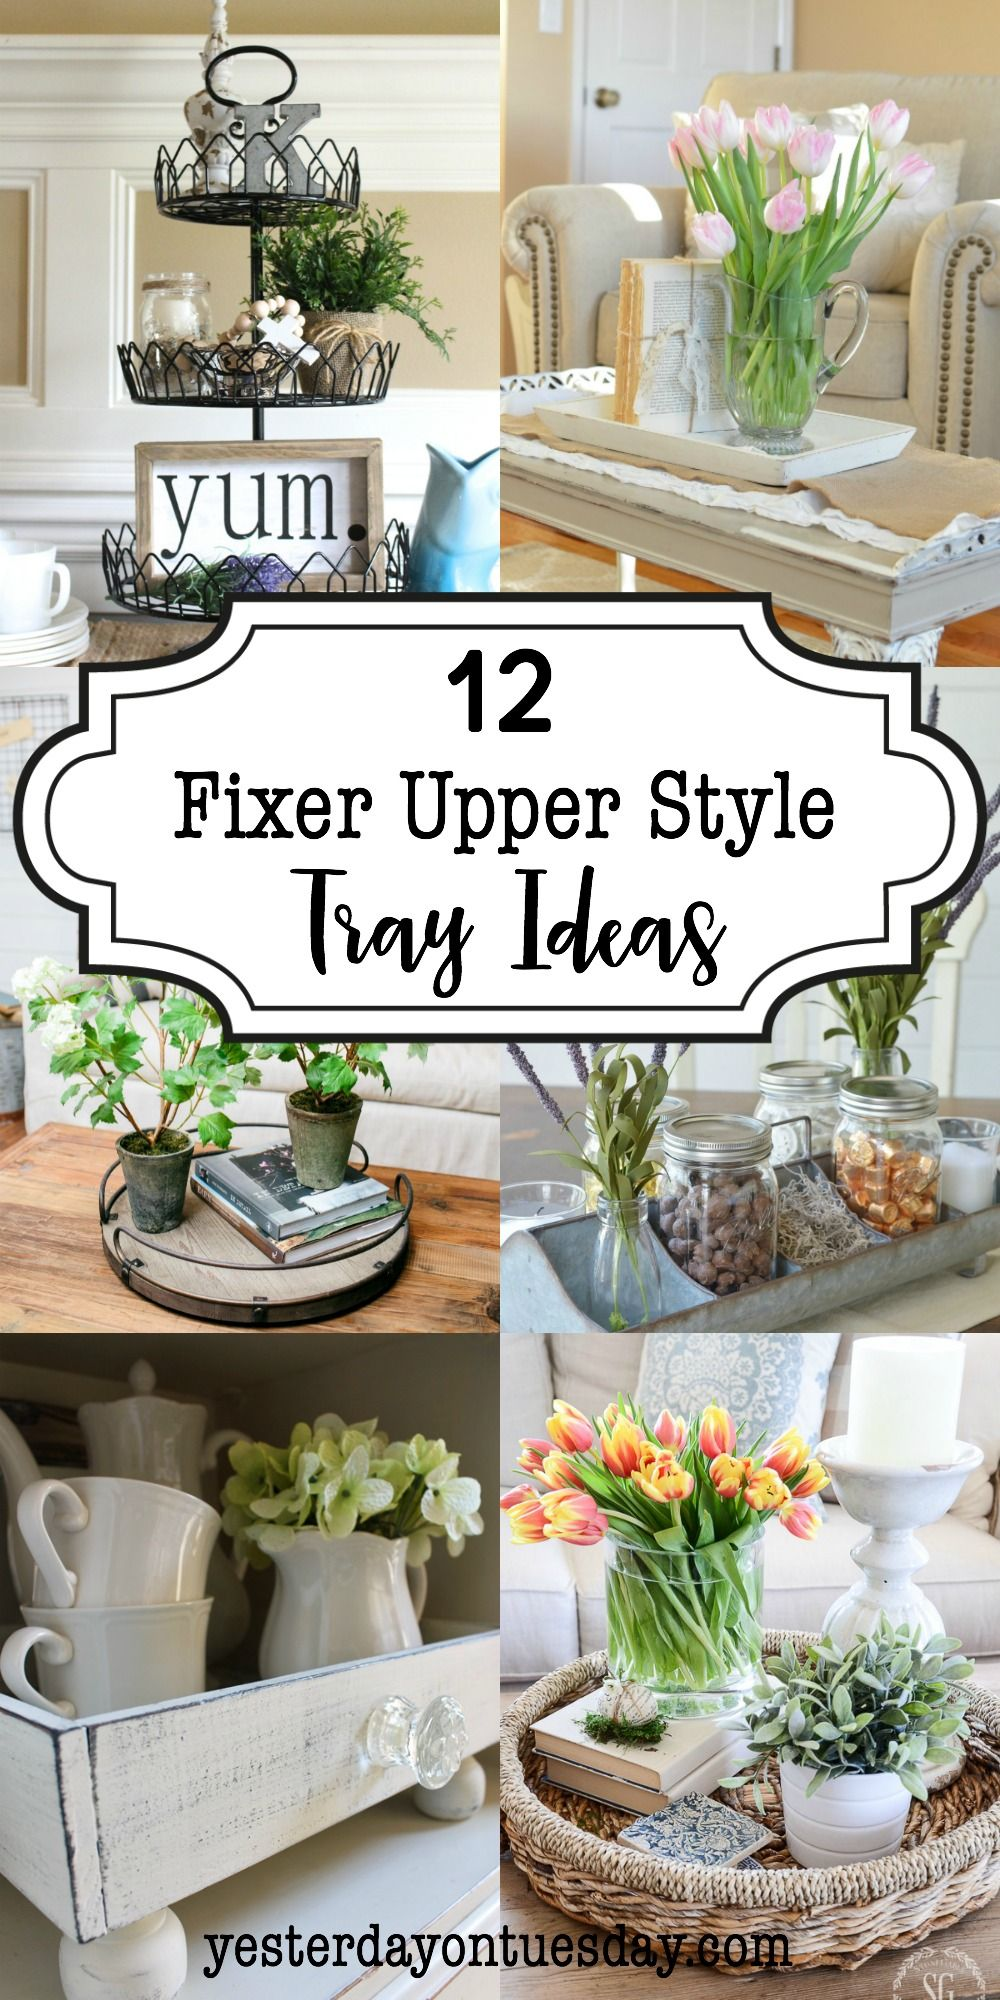 12 Fixer Upper Style Tray Ideas: Lovely ways to add a modern ...